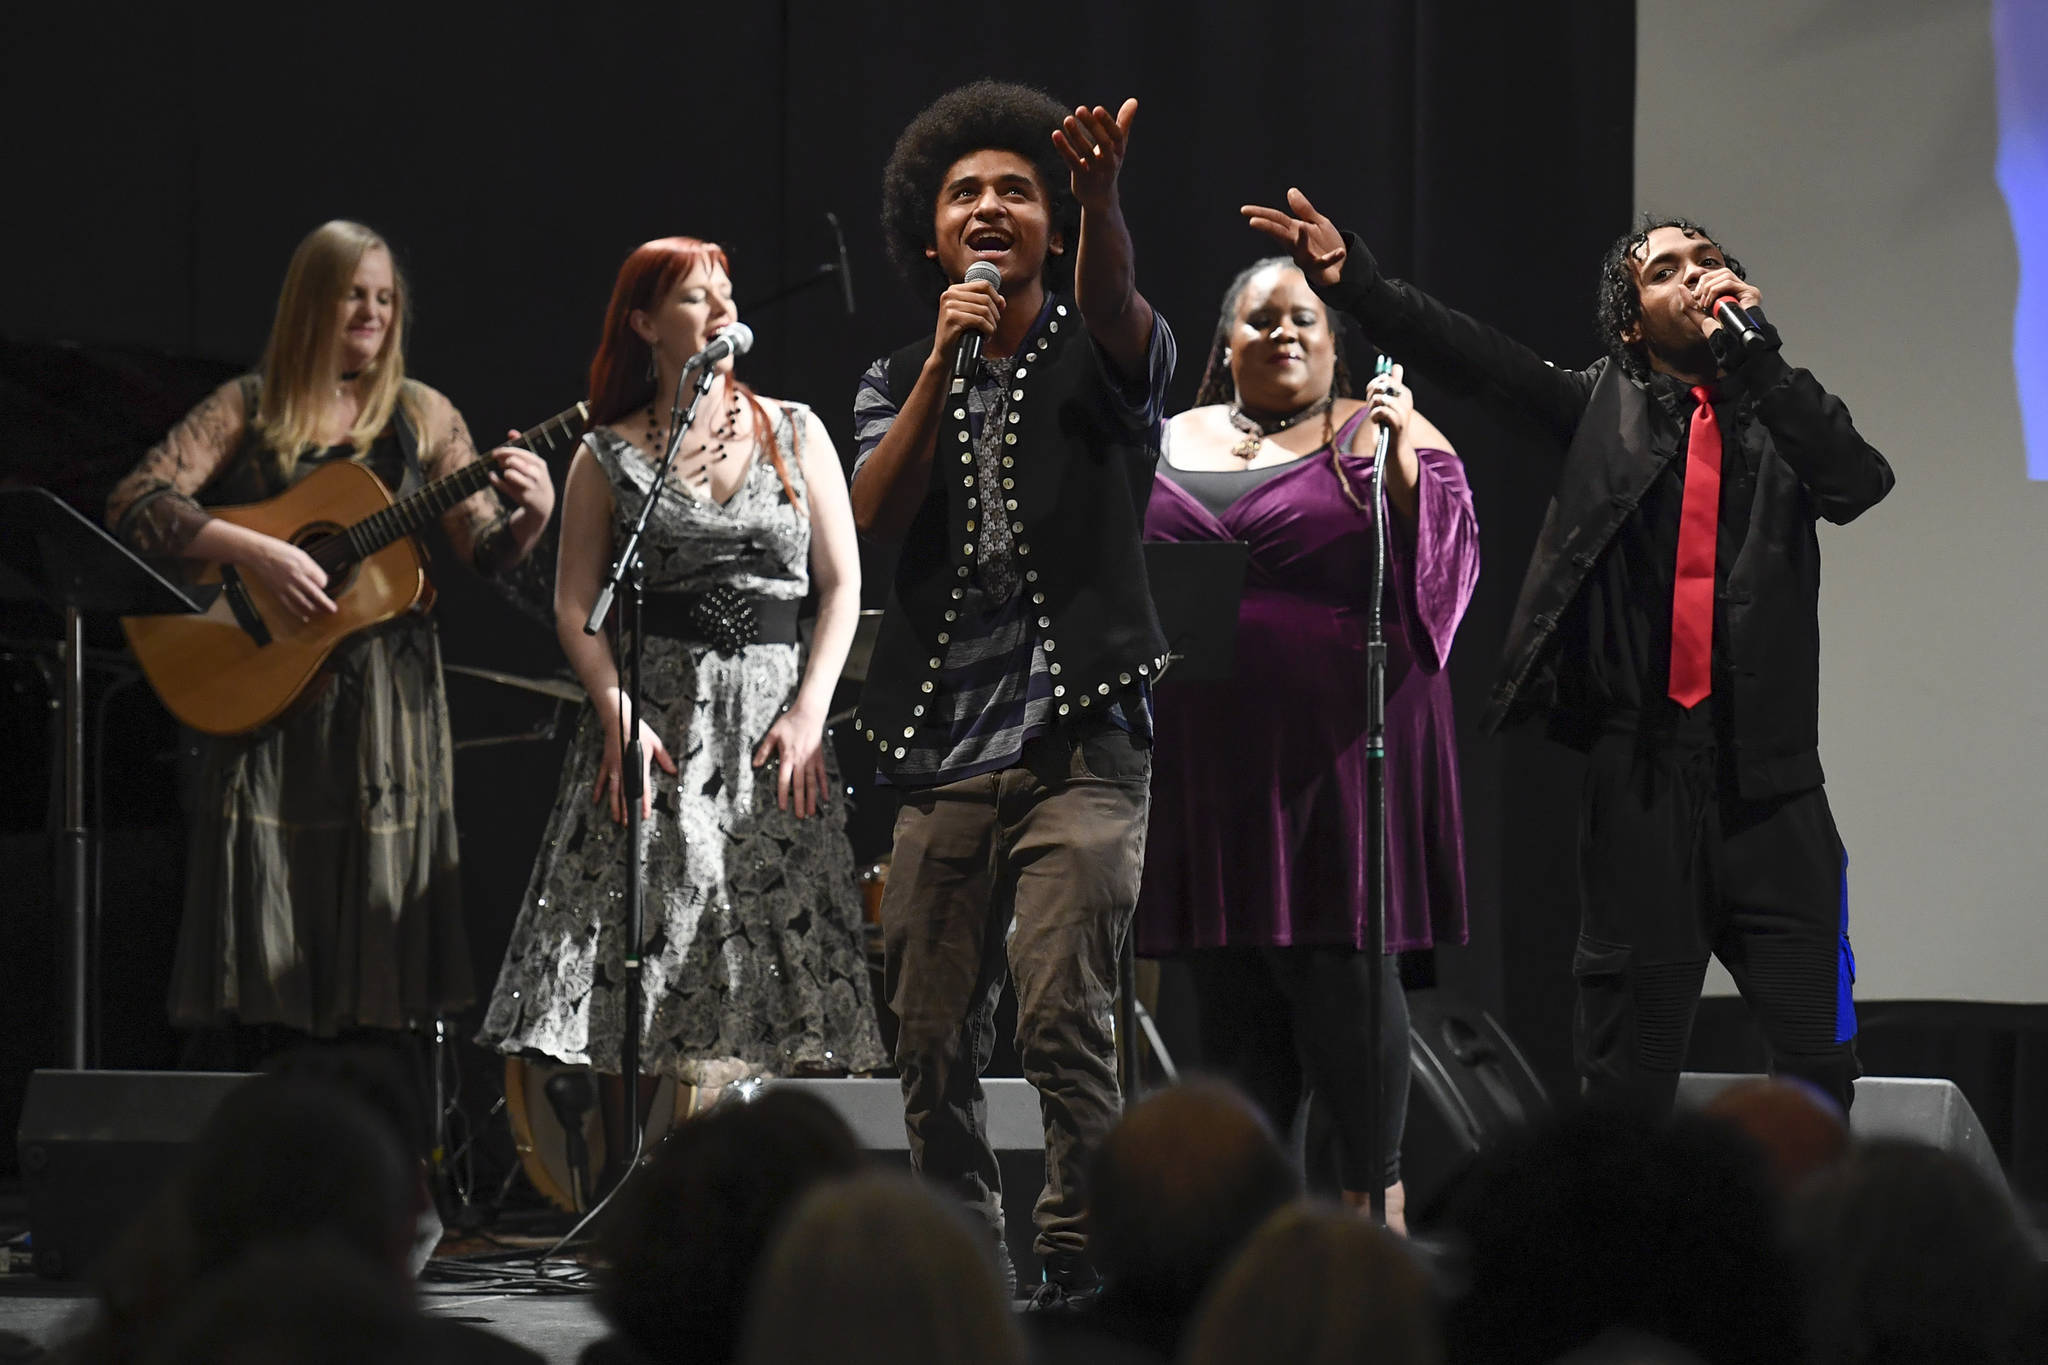 Laura Zahasky, left, Marian Call, Arias Hoyle, Jocelyn Miles and Chris Talley perform at the 2019 Governor's Arts and Humanities Awards at the Juneau Arts & Culture Center on Thursday, Feb. 7, 2019. (Michael Penn | Juneau Empire)